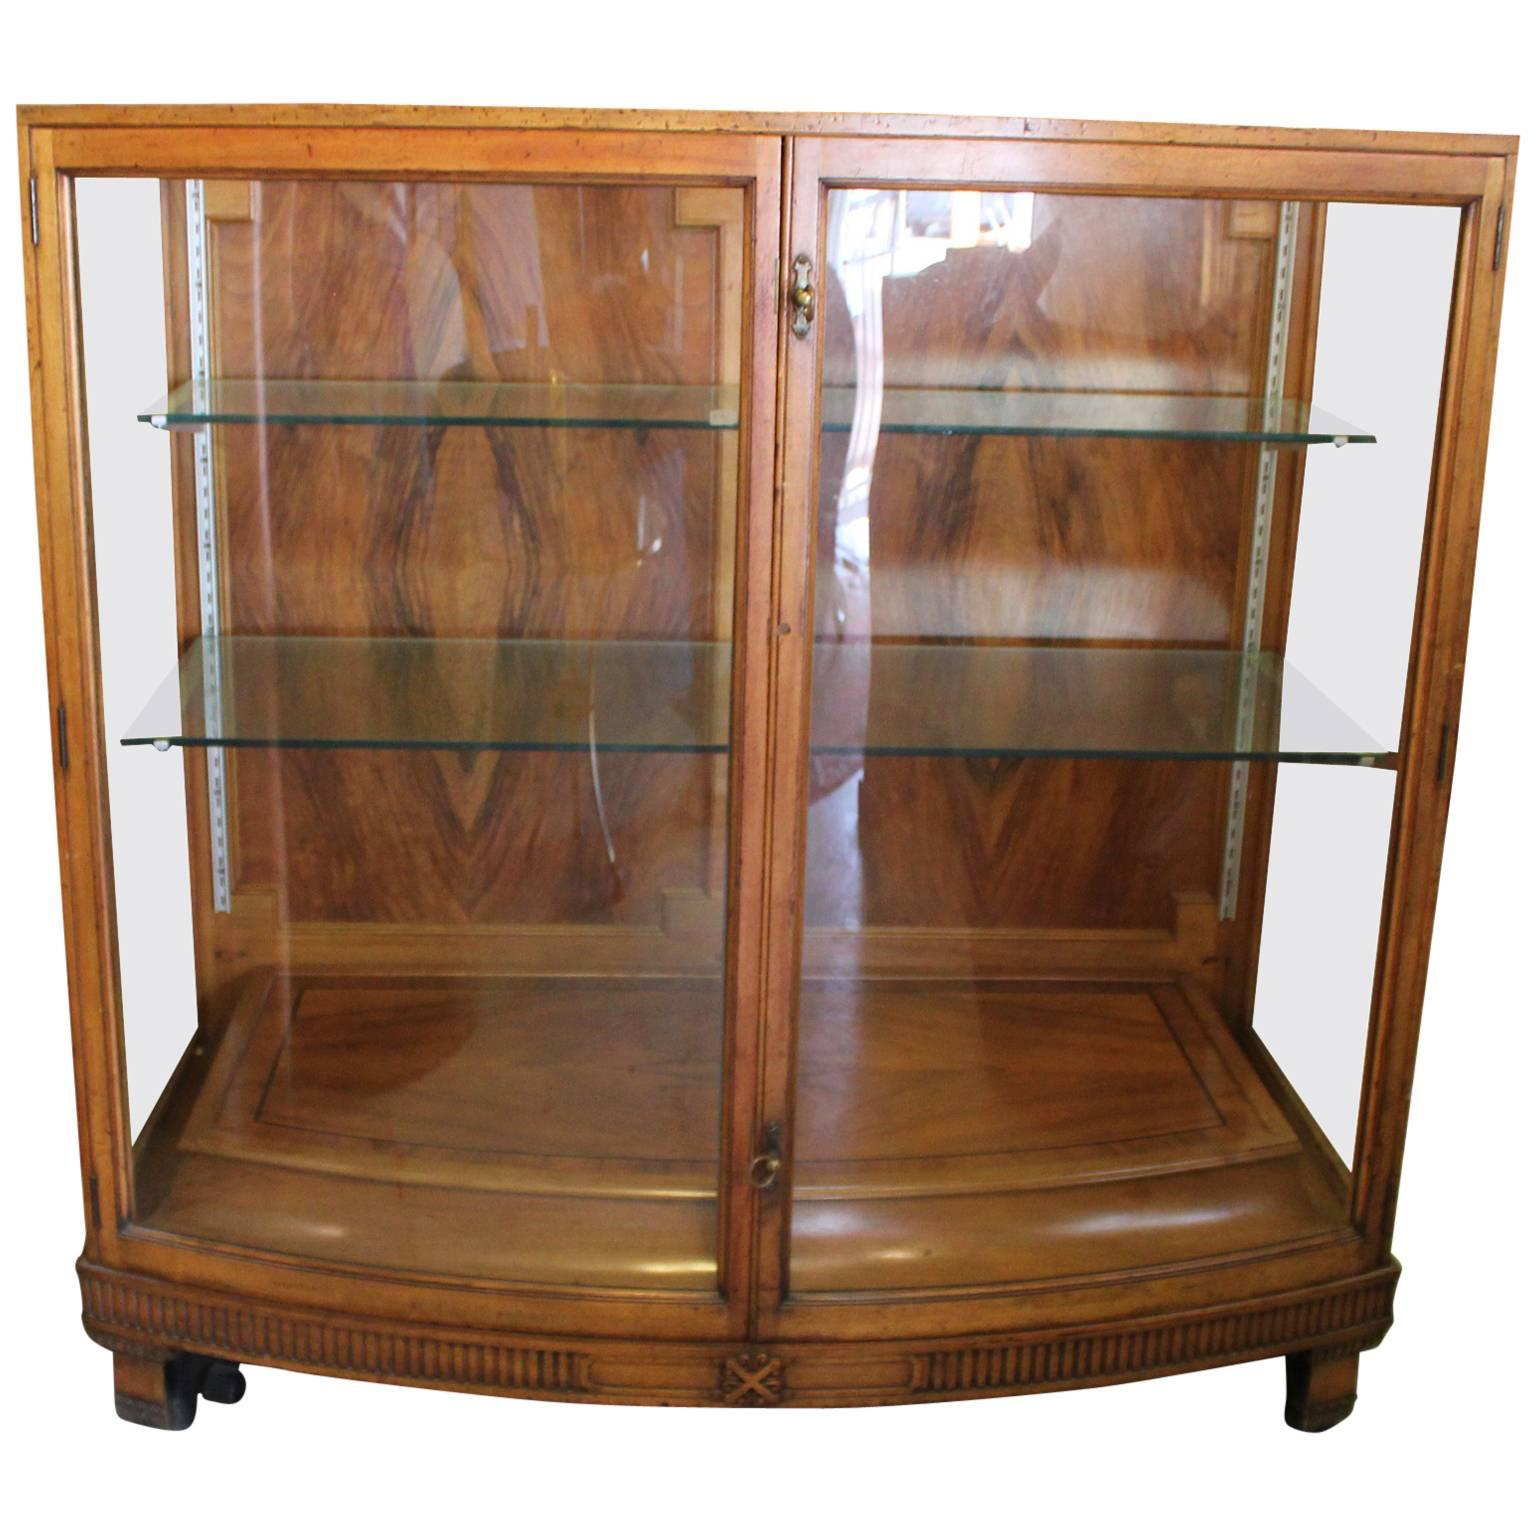 Vitrine Modern Modern French Regency Vitrine Or Display Case With Curved Glass And Walnut